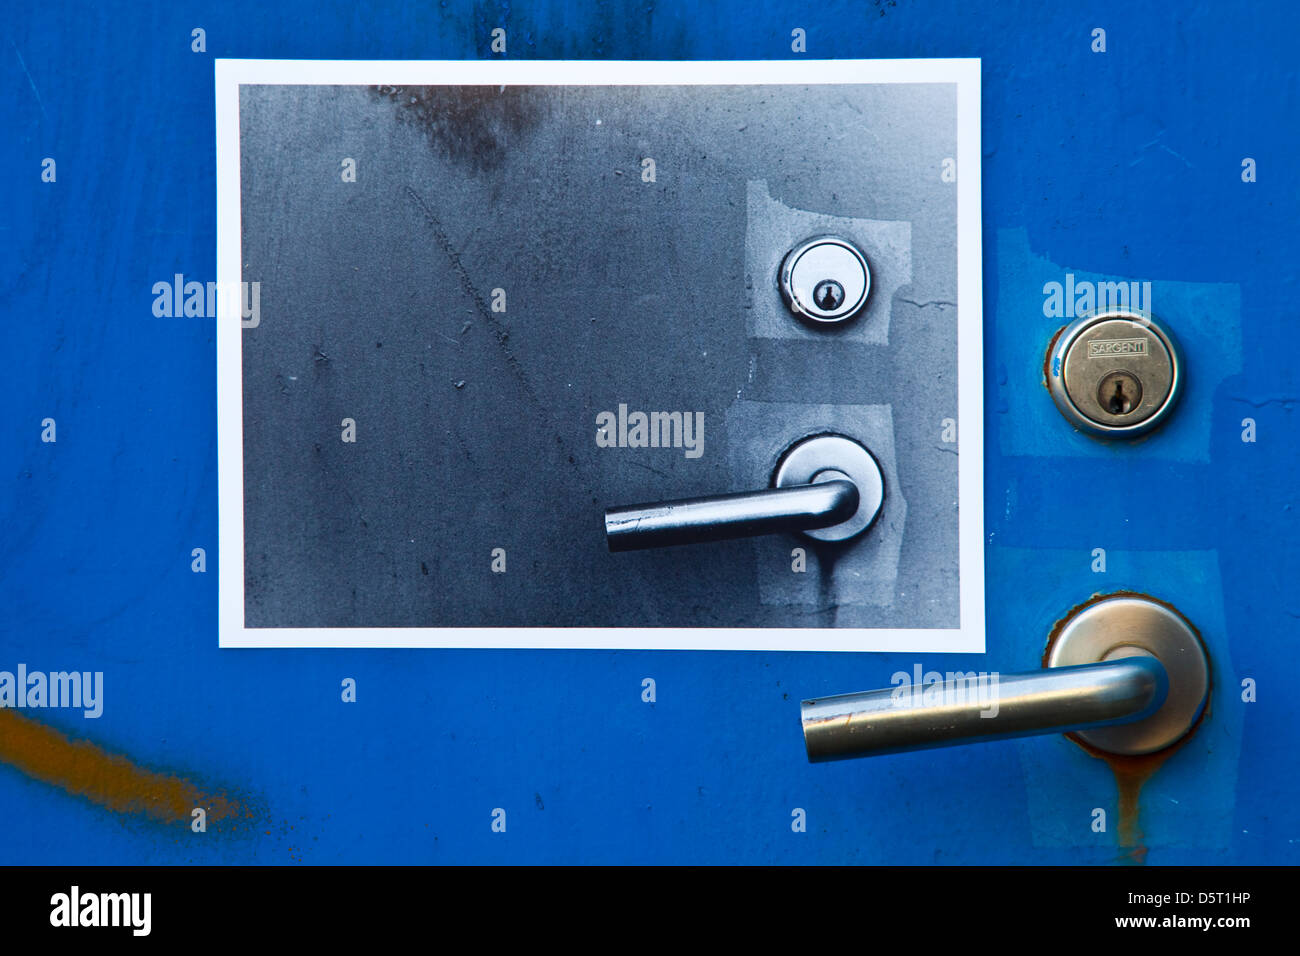 Abstract image of handle and lock, Granville Island, Vancouver - Stock Image